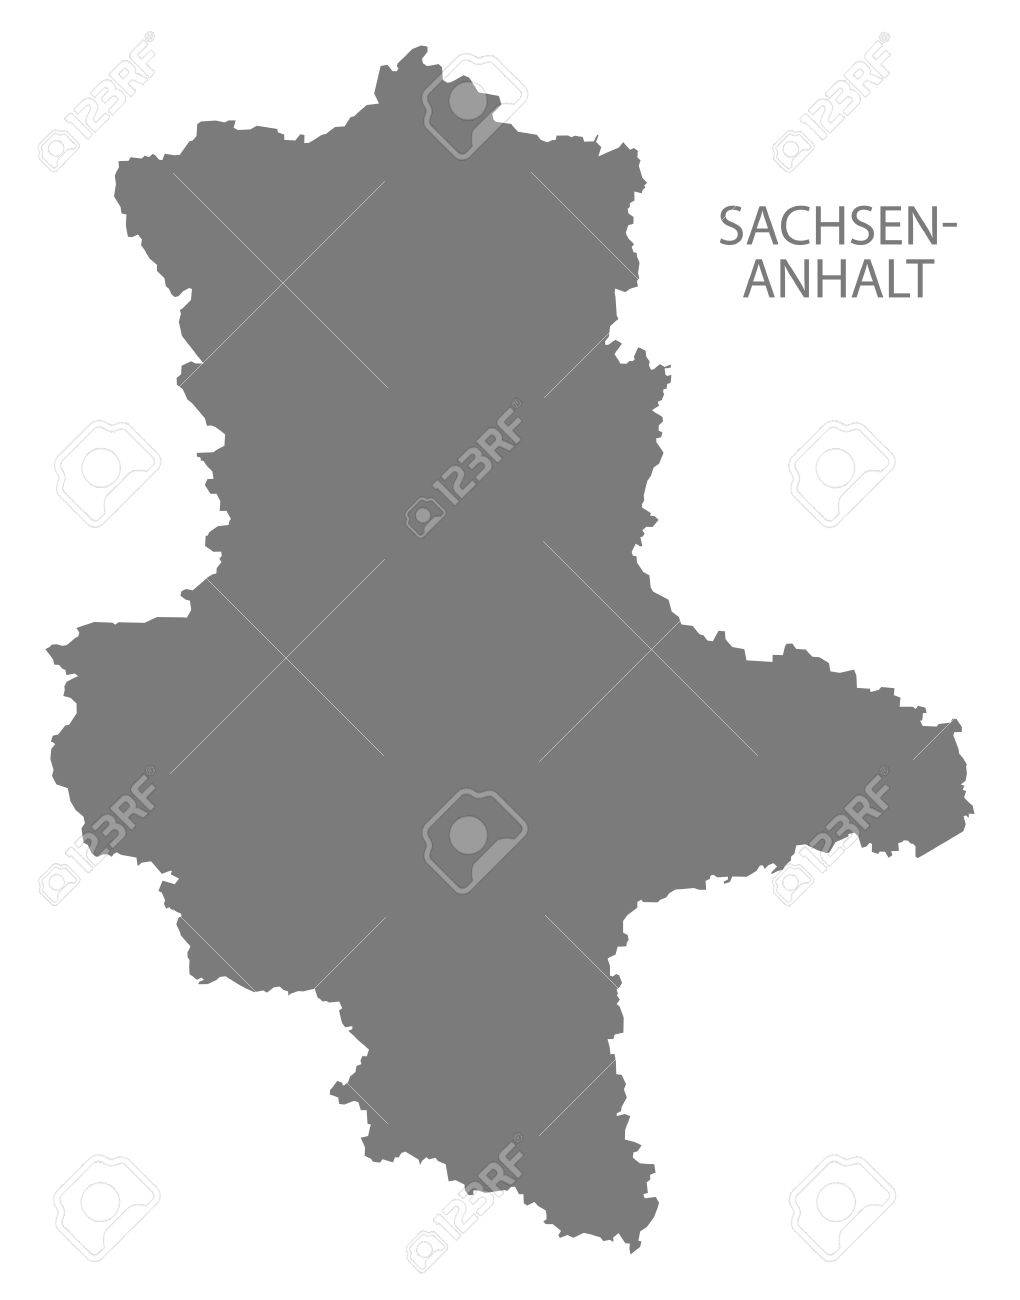 SachsenAnhalt Germany Map Grey Royalty Free Cliparts Vectors And